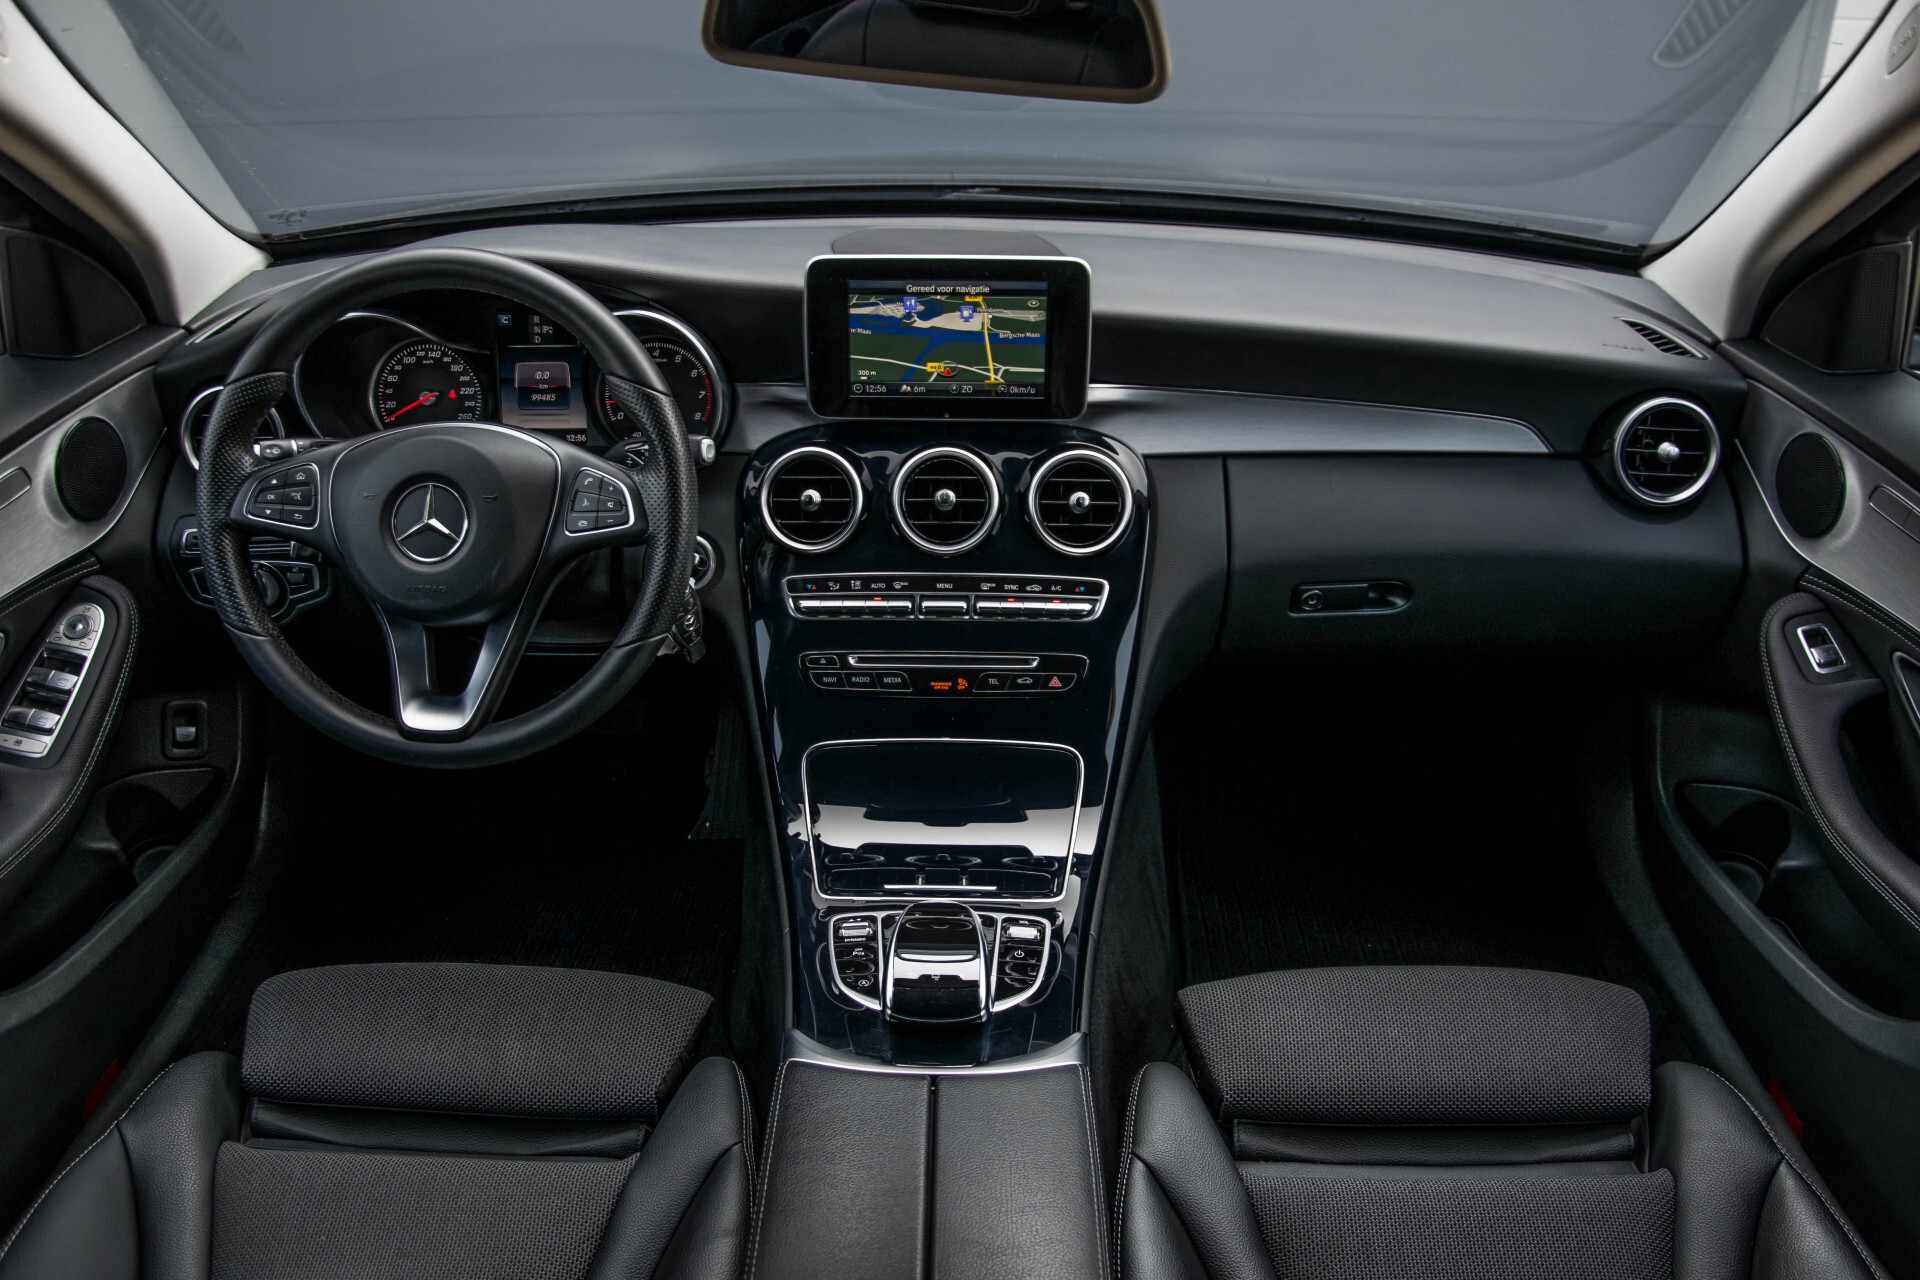 Mercedes-Benz C-Klasse Estate 180 Avantgarde LED/Navi/Privacyglas/Pts/Aut-koffer Aut7 Foto 7